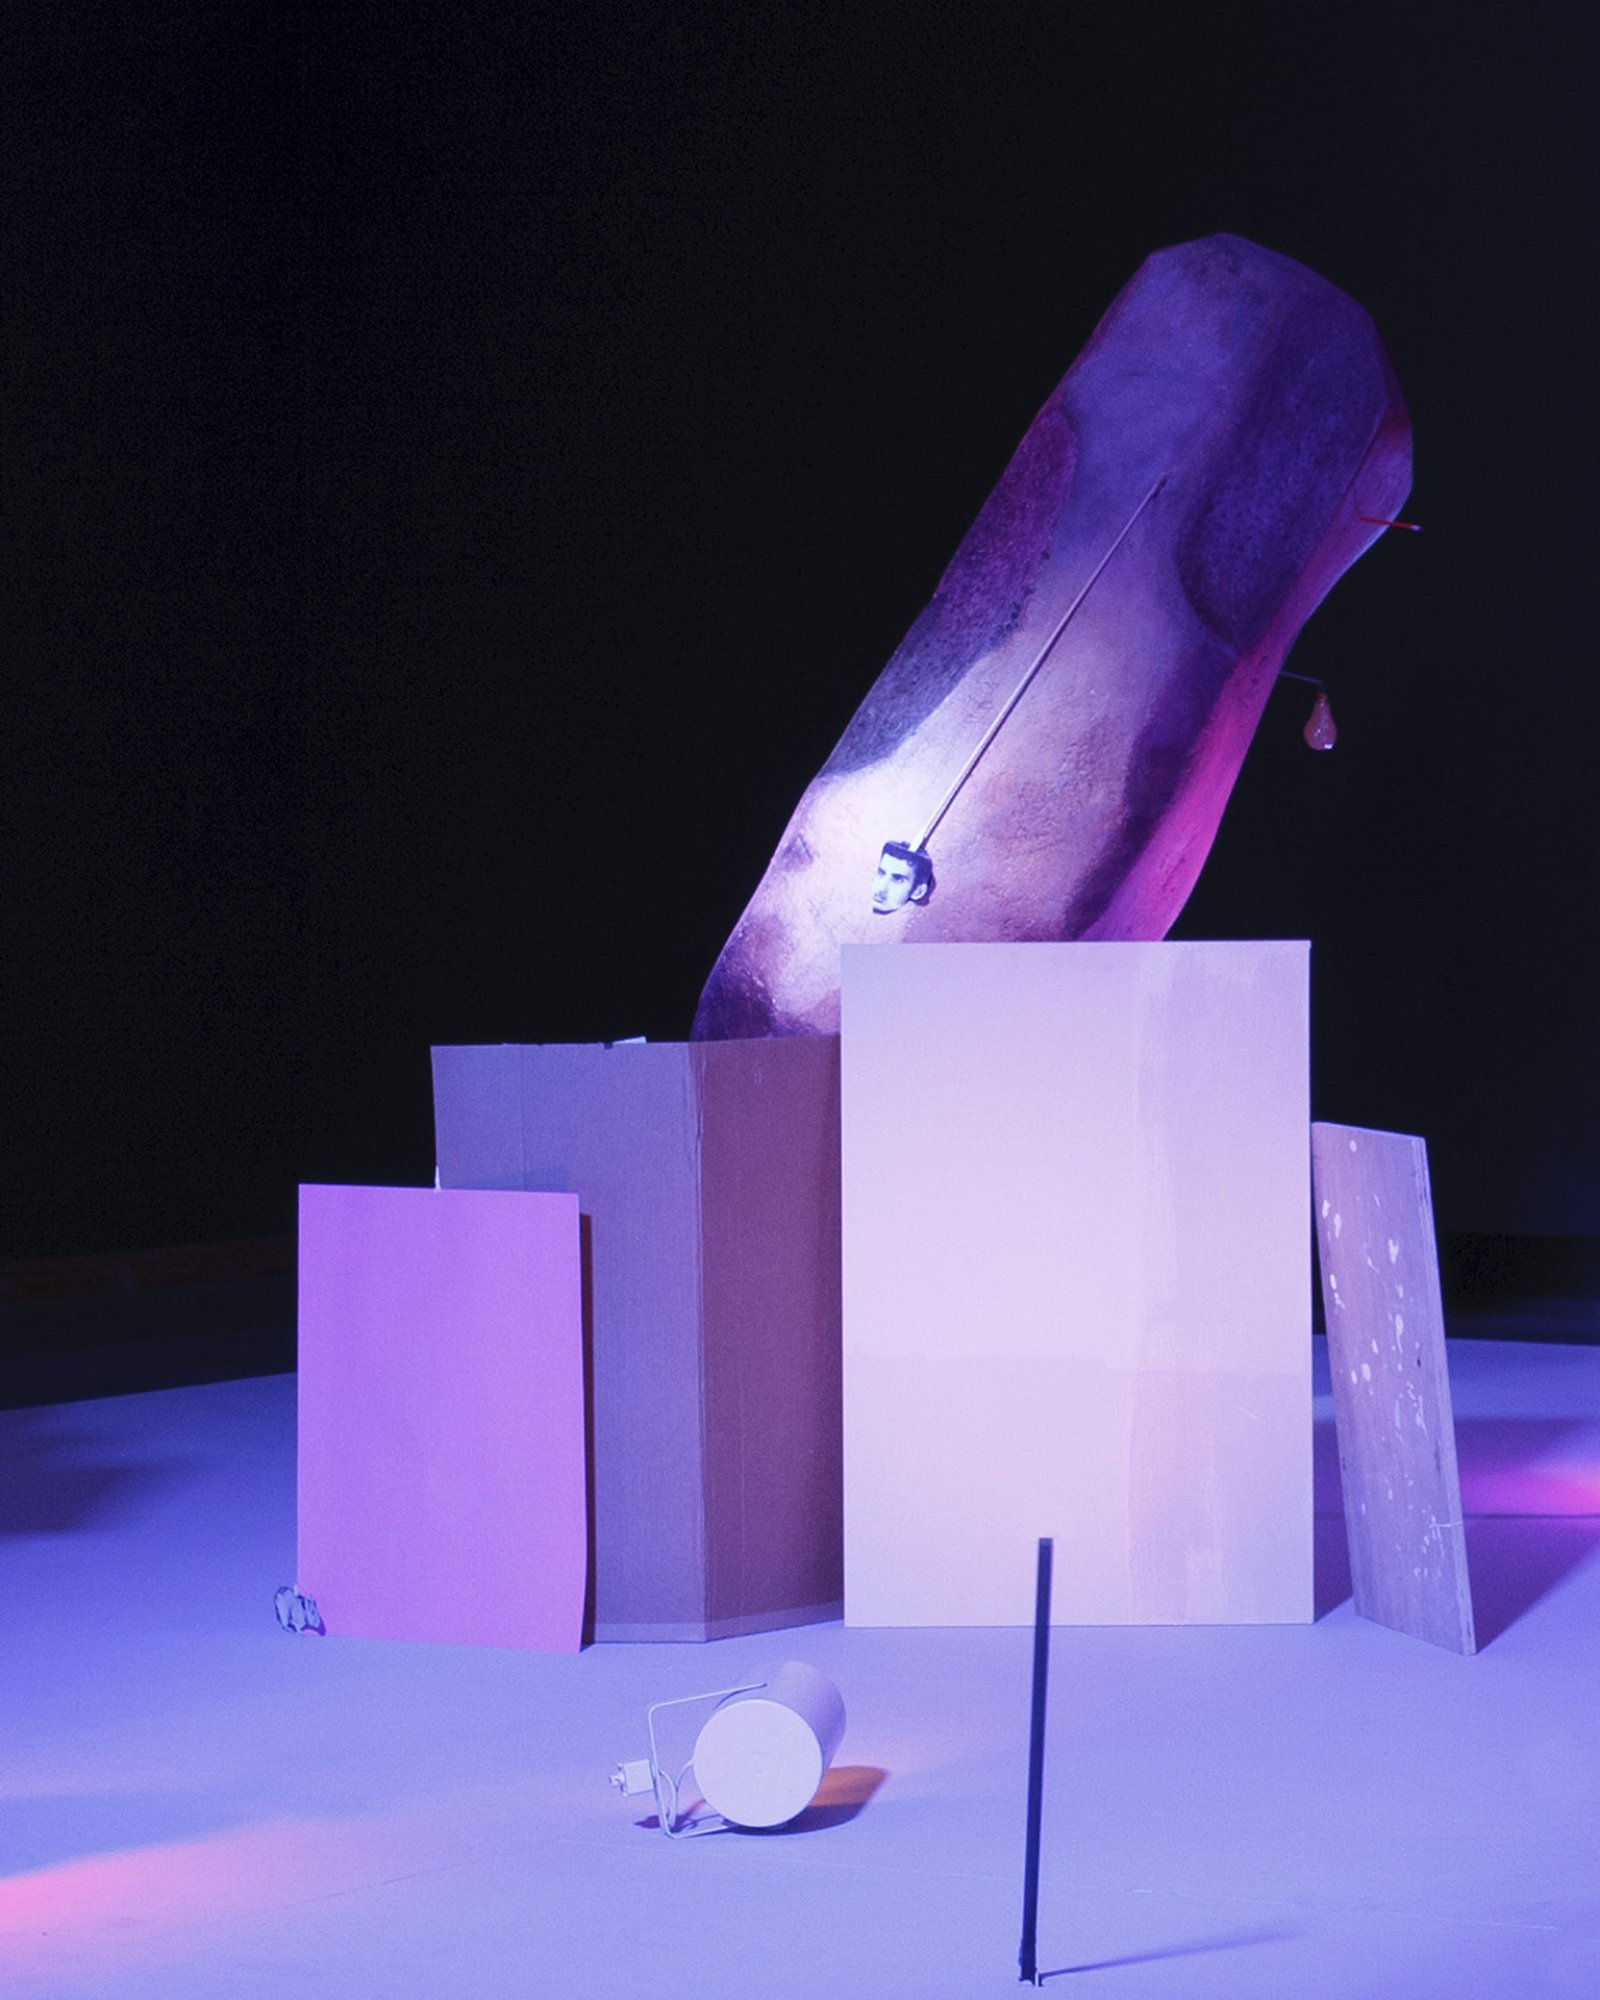 Geoffrey Farmer,Let's Make The Water Turn Black, 2011, a theatrical presentation of sculptural objects on a stage, with animatronics, audio and lighting directed by various computer programs, 289 x 360 x 90 in. (734 x 914 x 229 cm).Installation view, REDCAT, Los Angeles, 2011